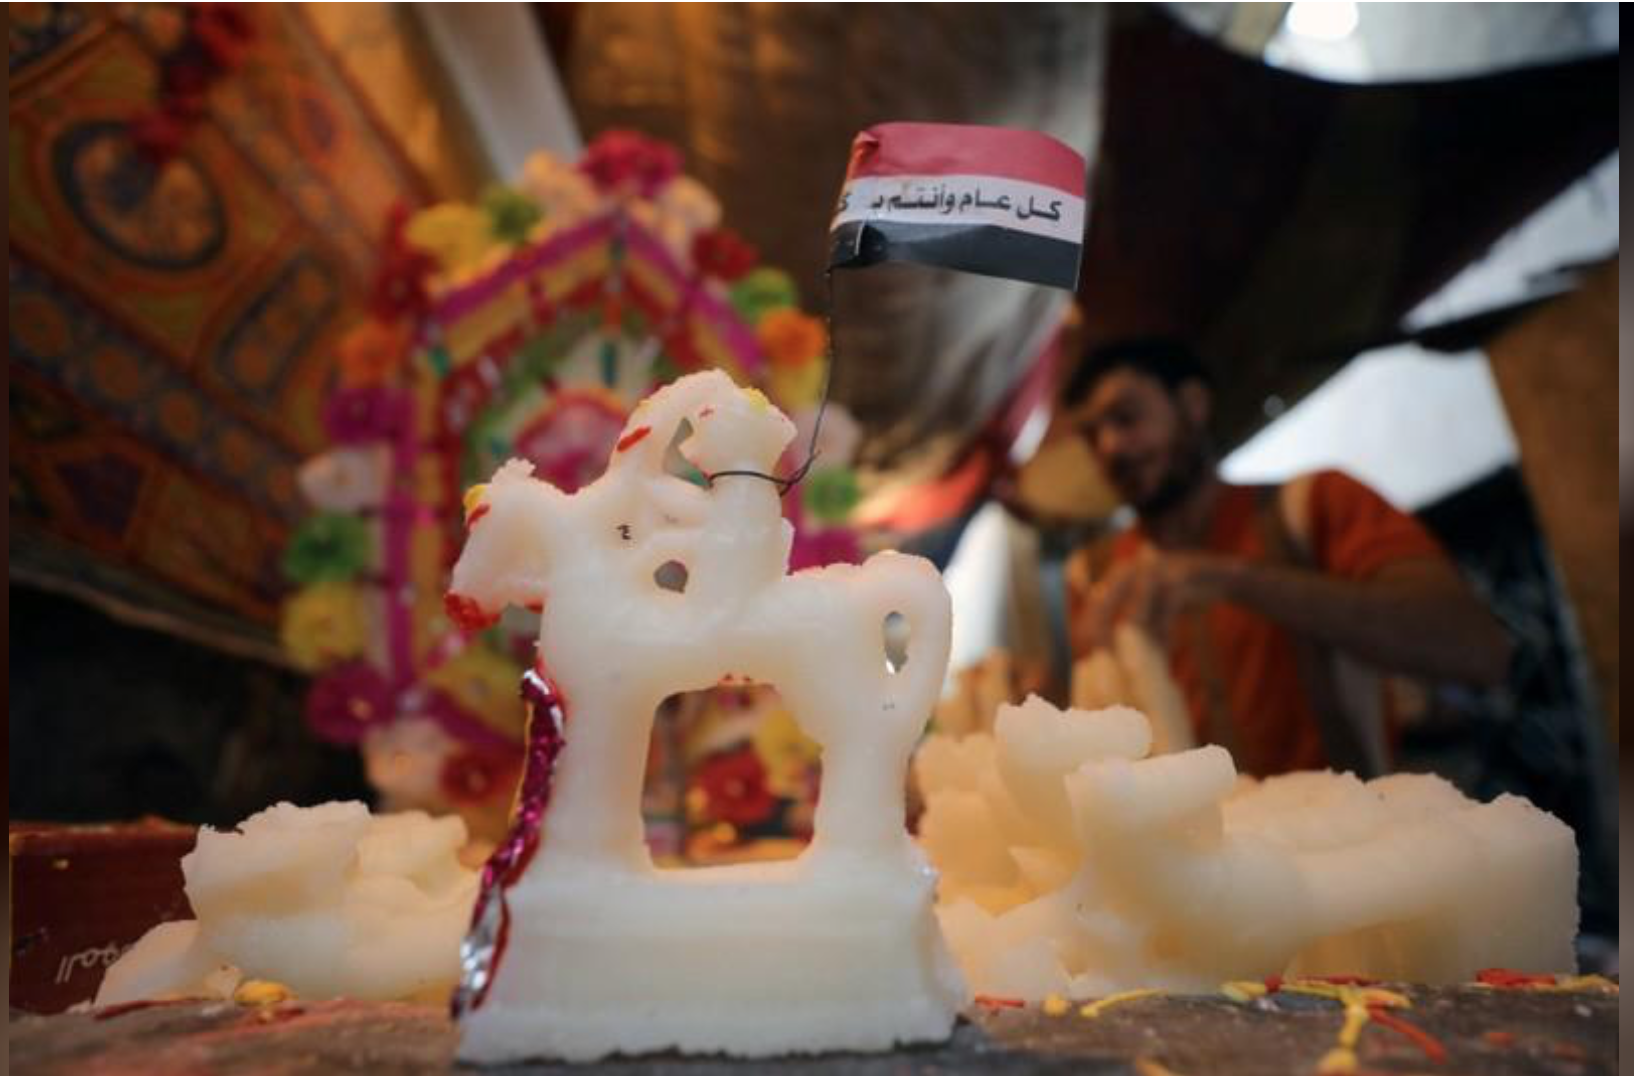 Egyptians celebrate Prophet Mohammad's birth but miss sugar dolls